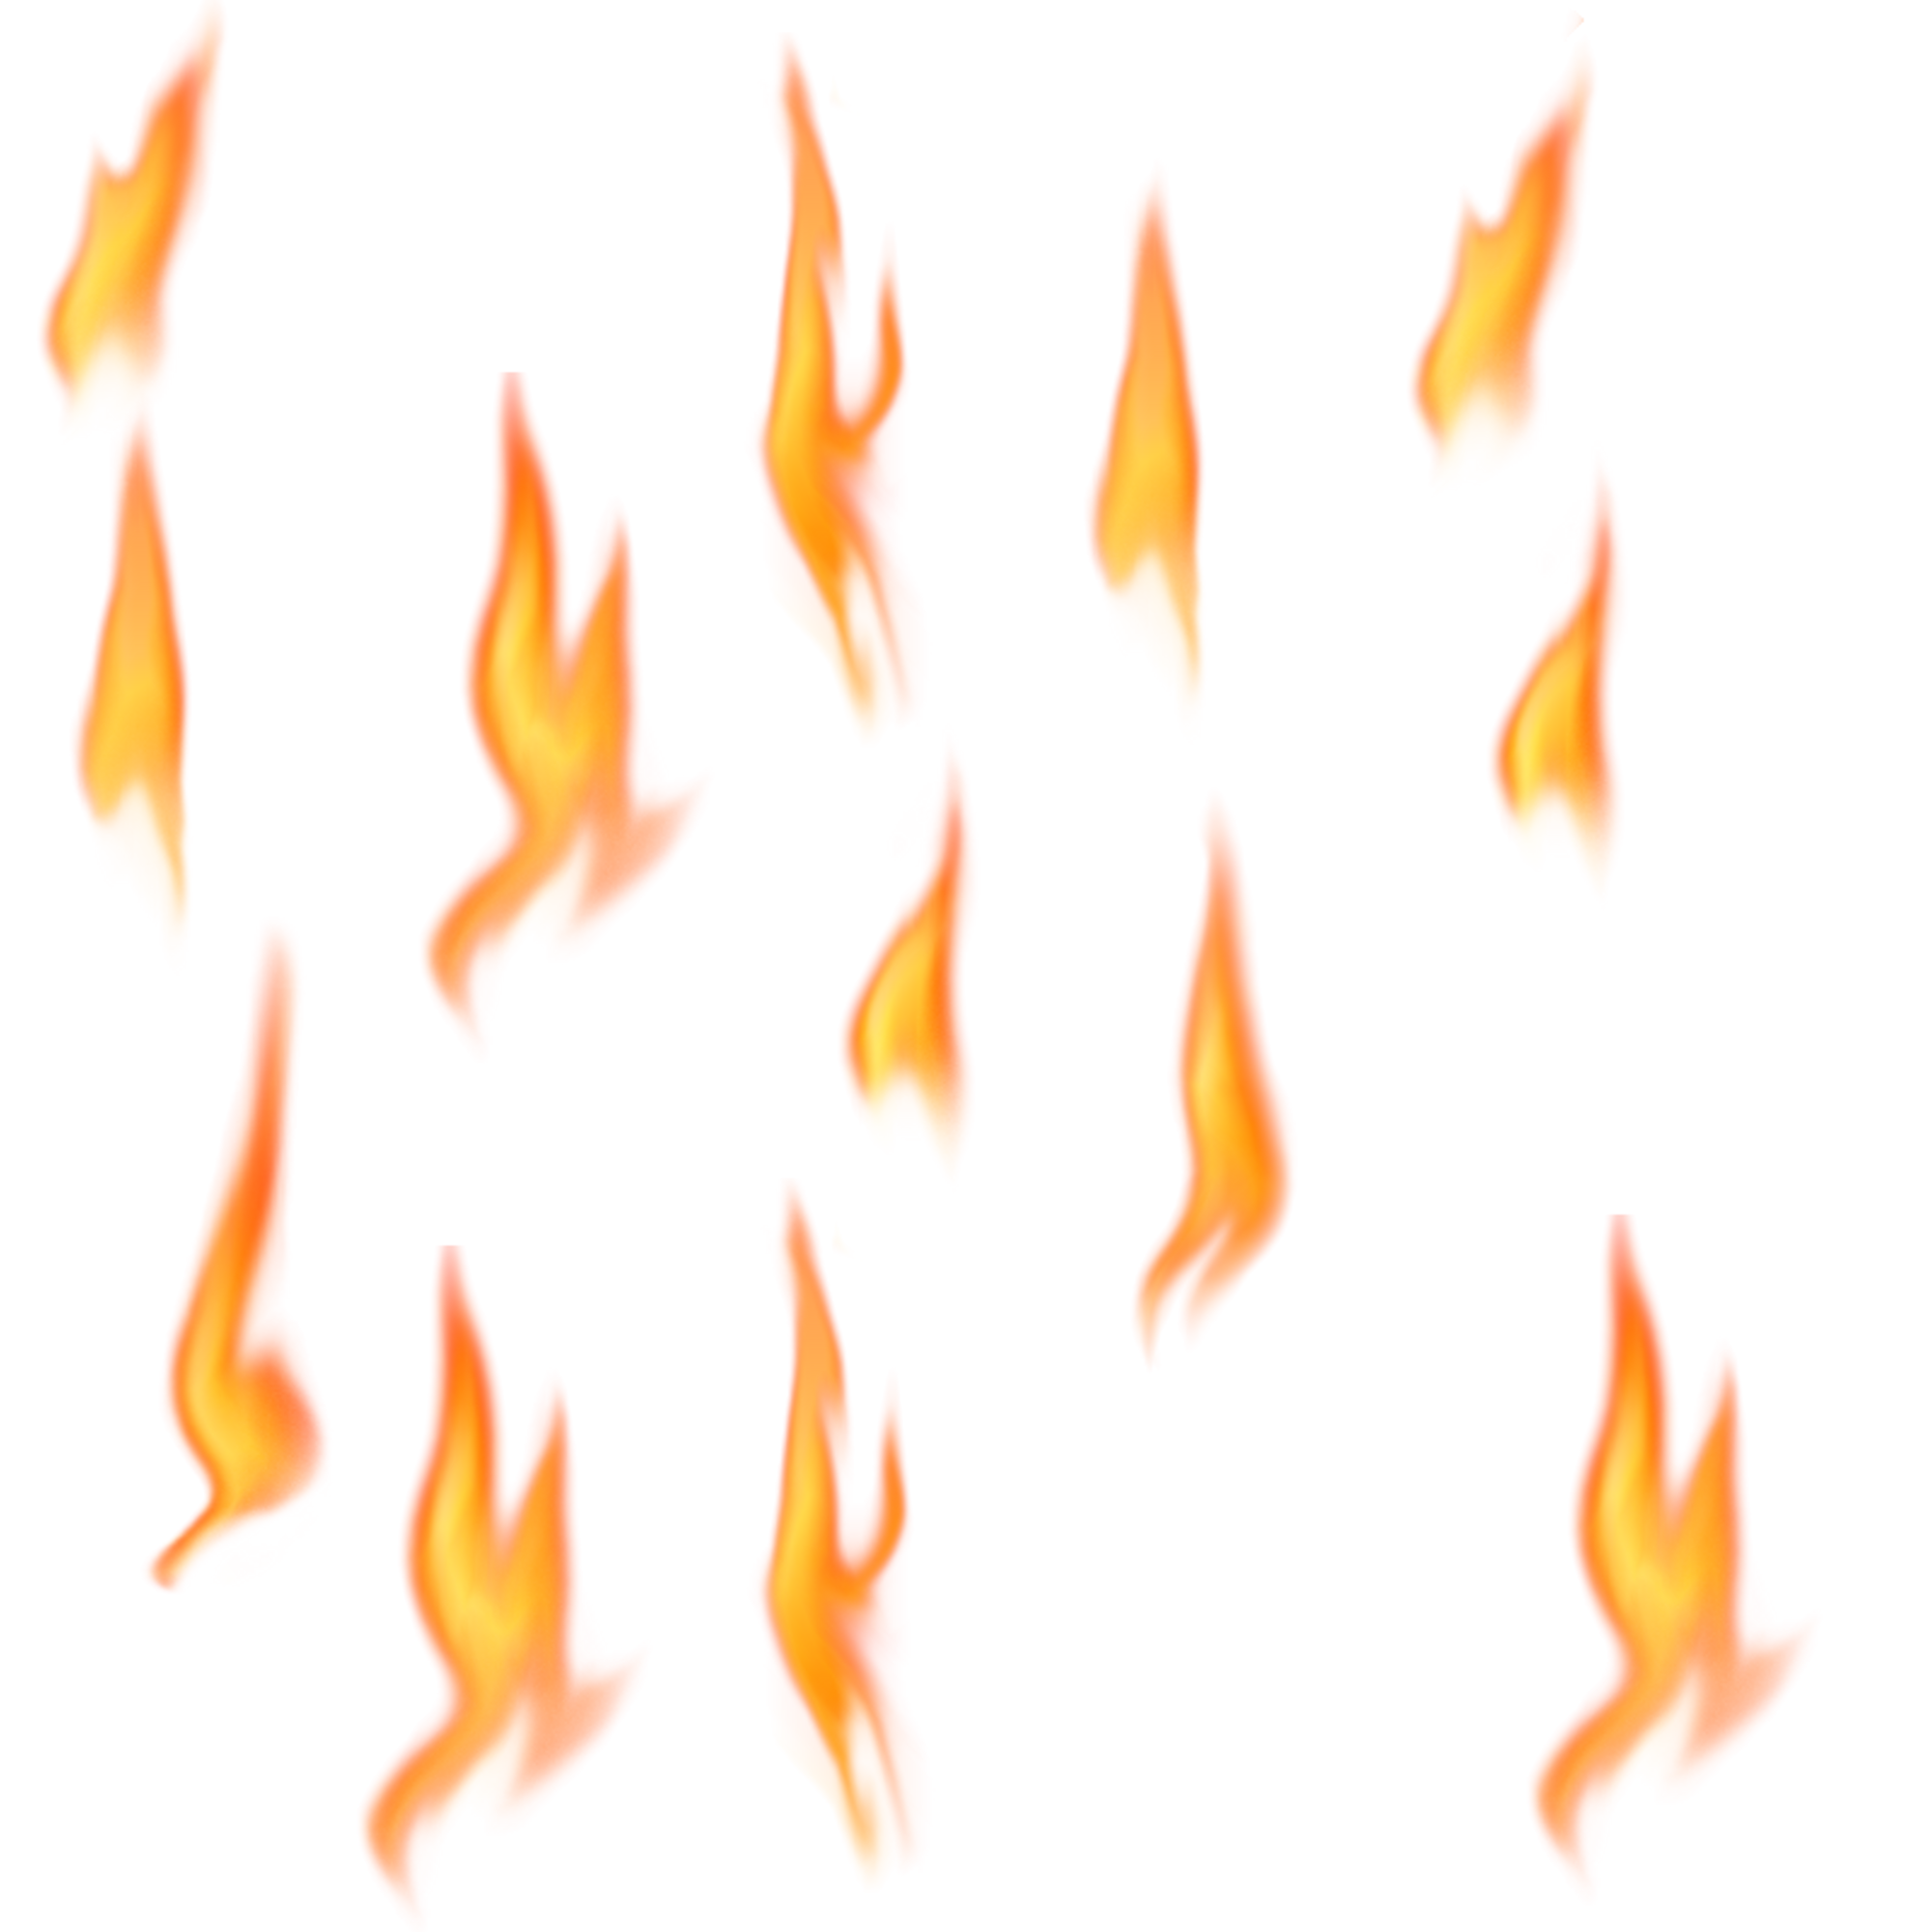 Fire Png Image Clip Art Background Images Hd Fire